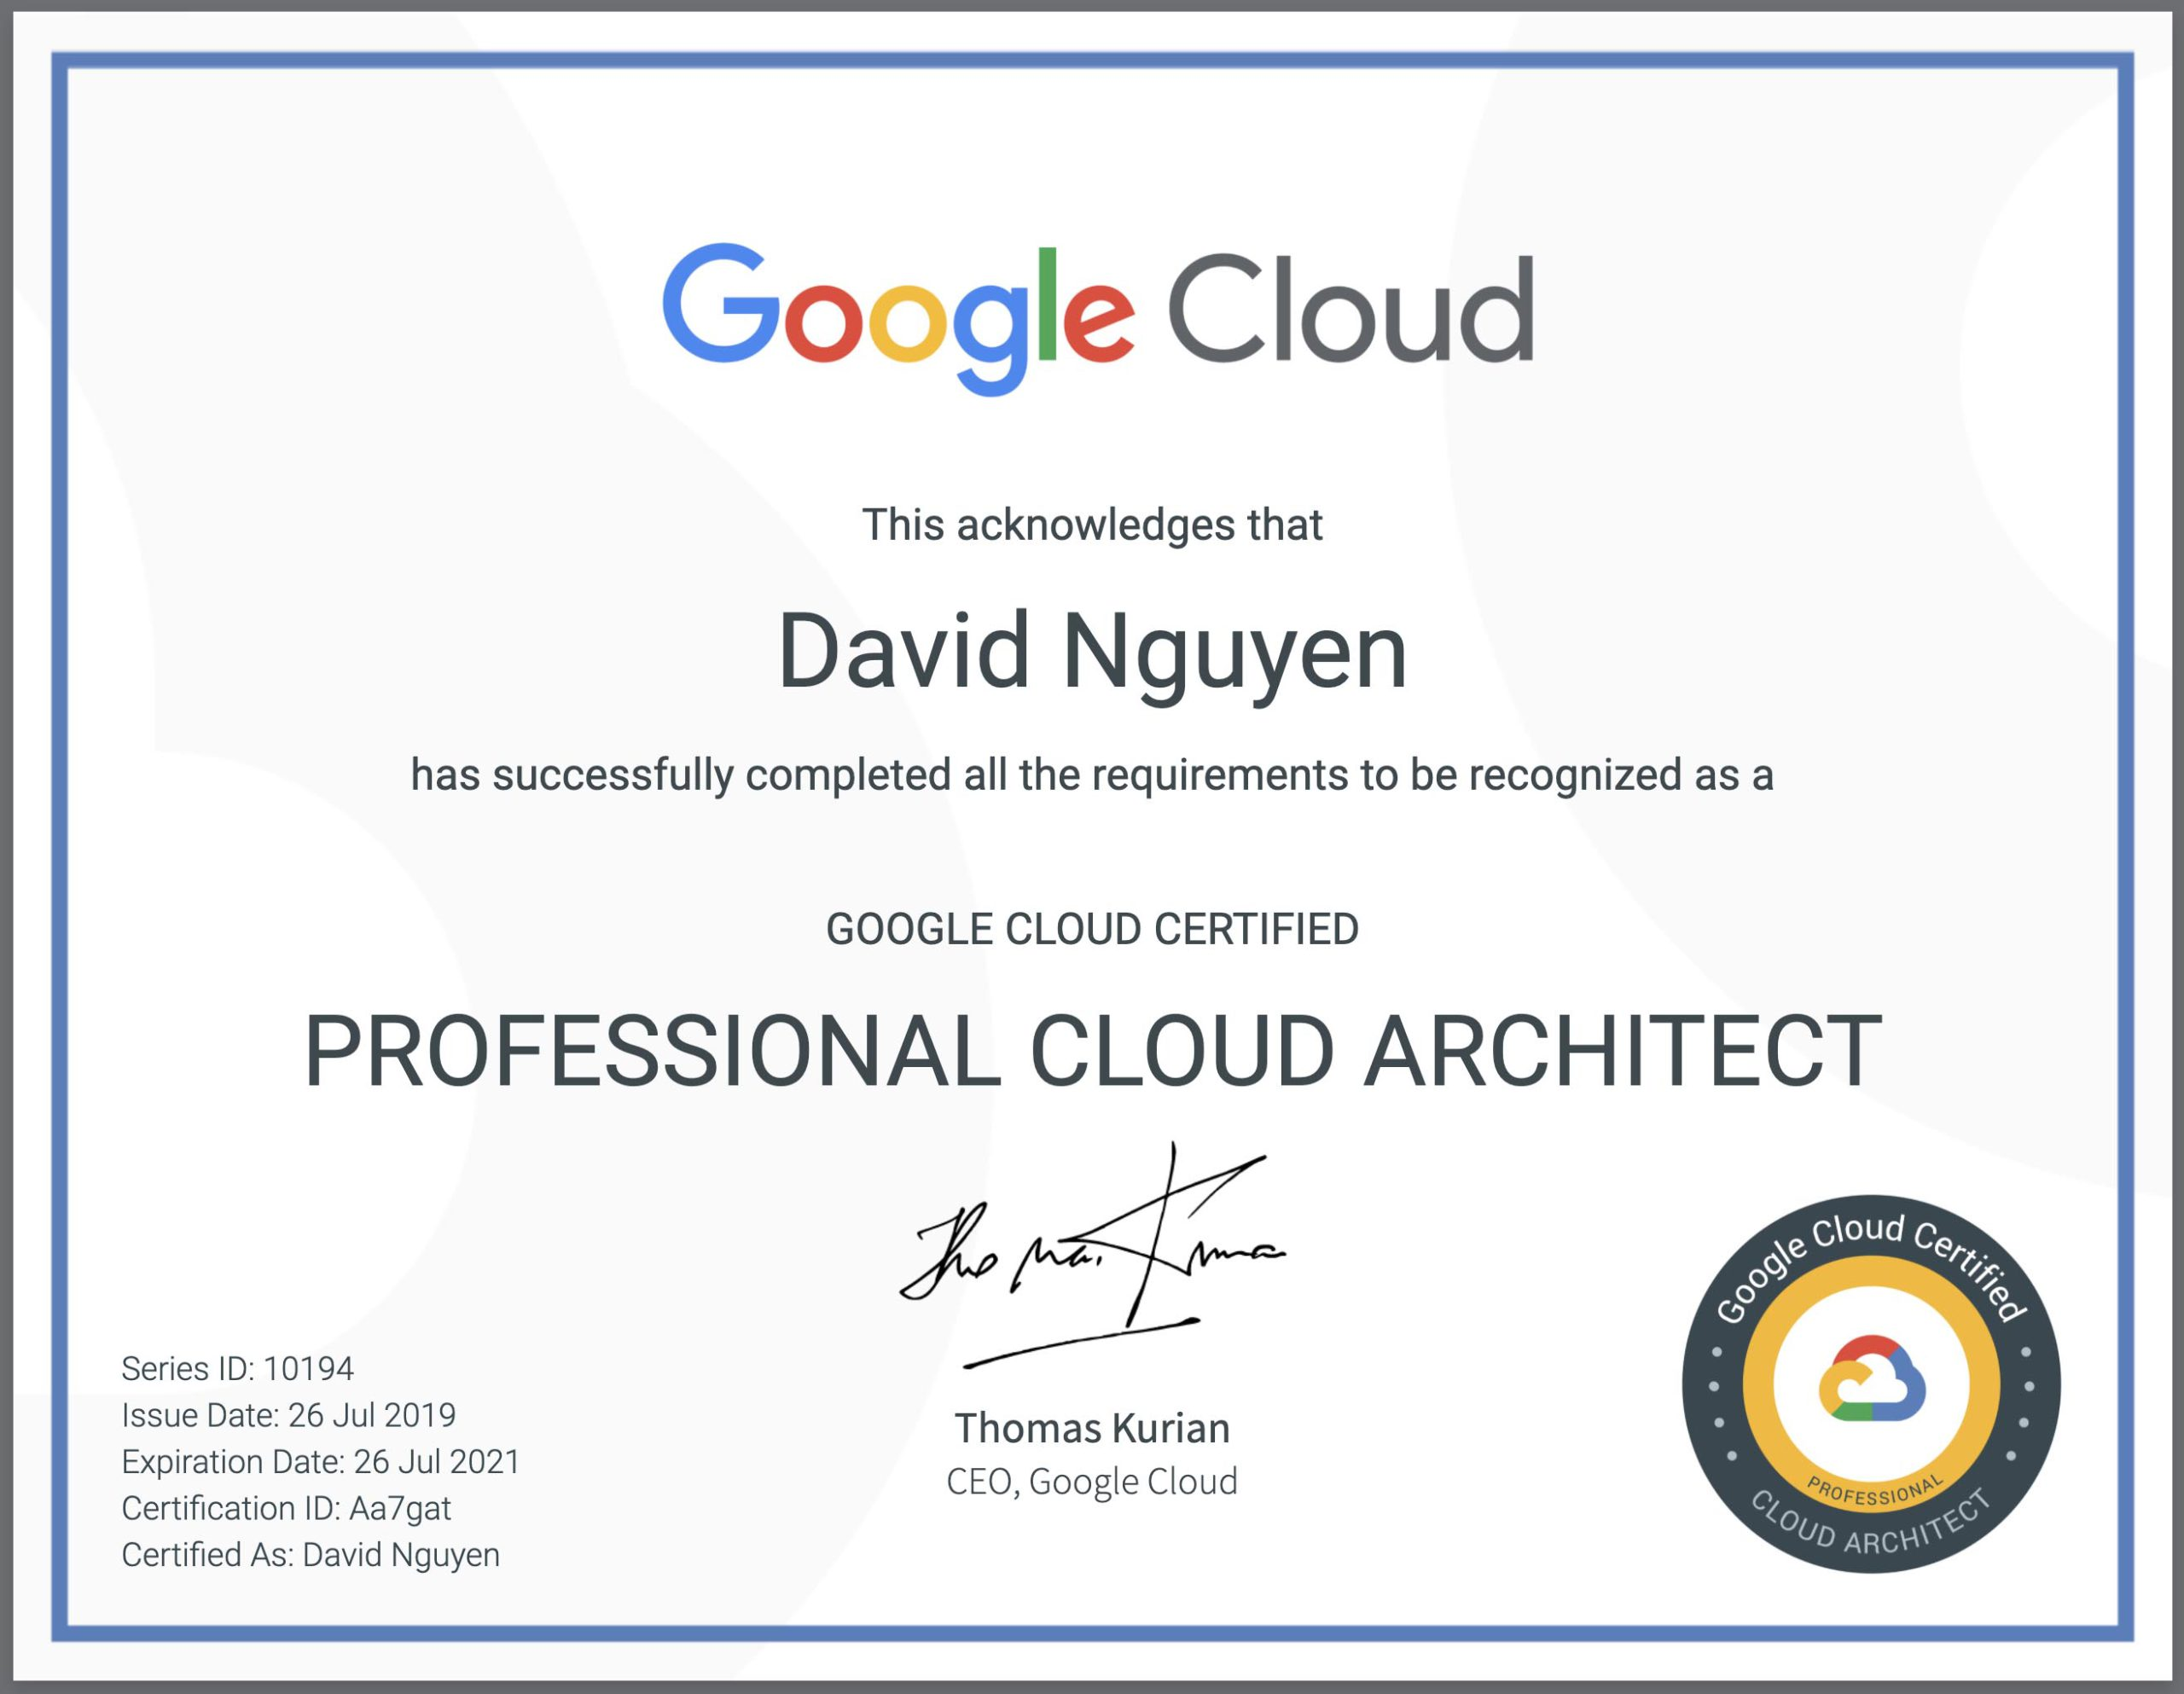 Official Google Cloud Certified Professional Cloud Architect